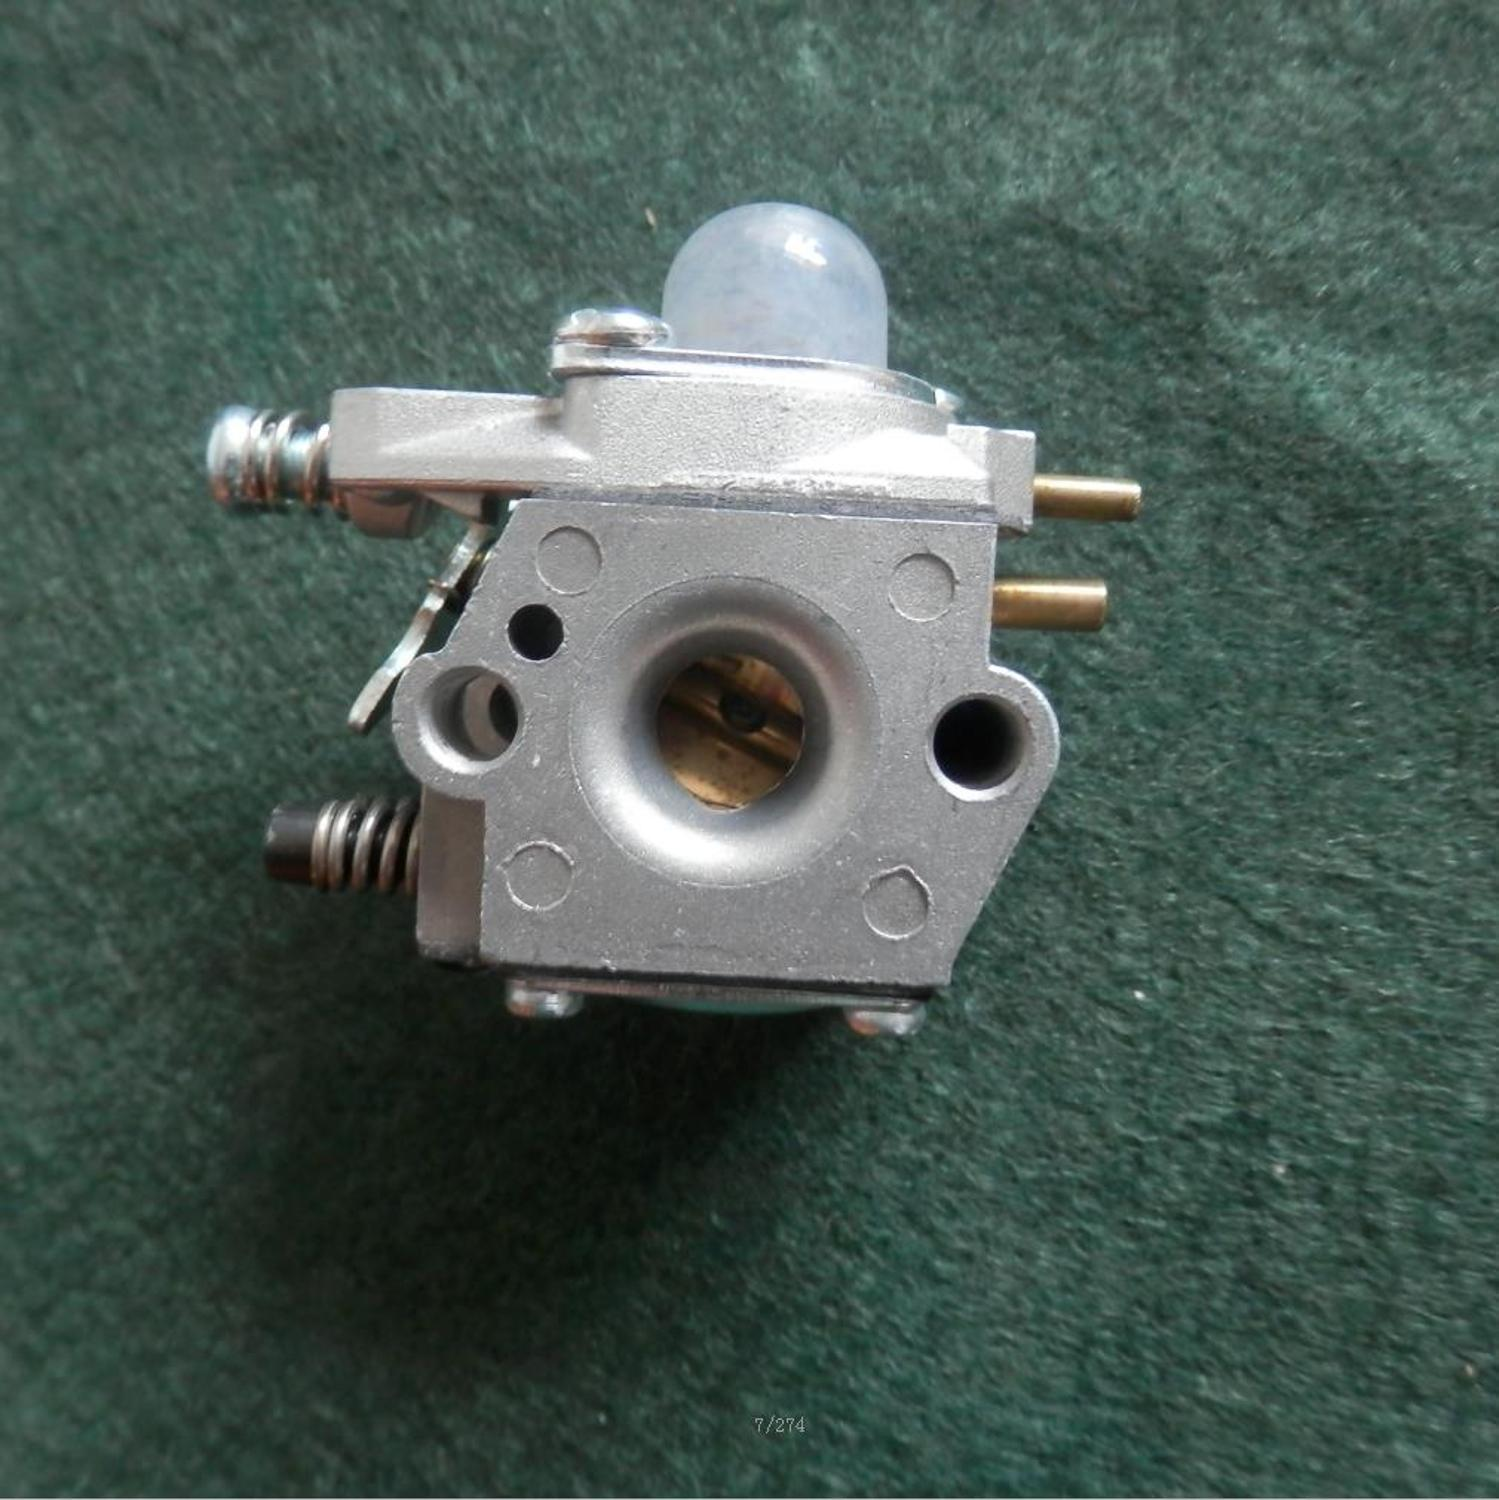 3605 CARBURETOR W/ PRIMER BULB FOR ECHO SRM 3600 SRM-3605 & MORE  STRIMMER CARBURETTOR BRUSHCUTTERS CHAINSAW CARBY